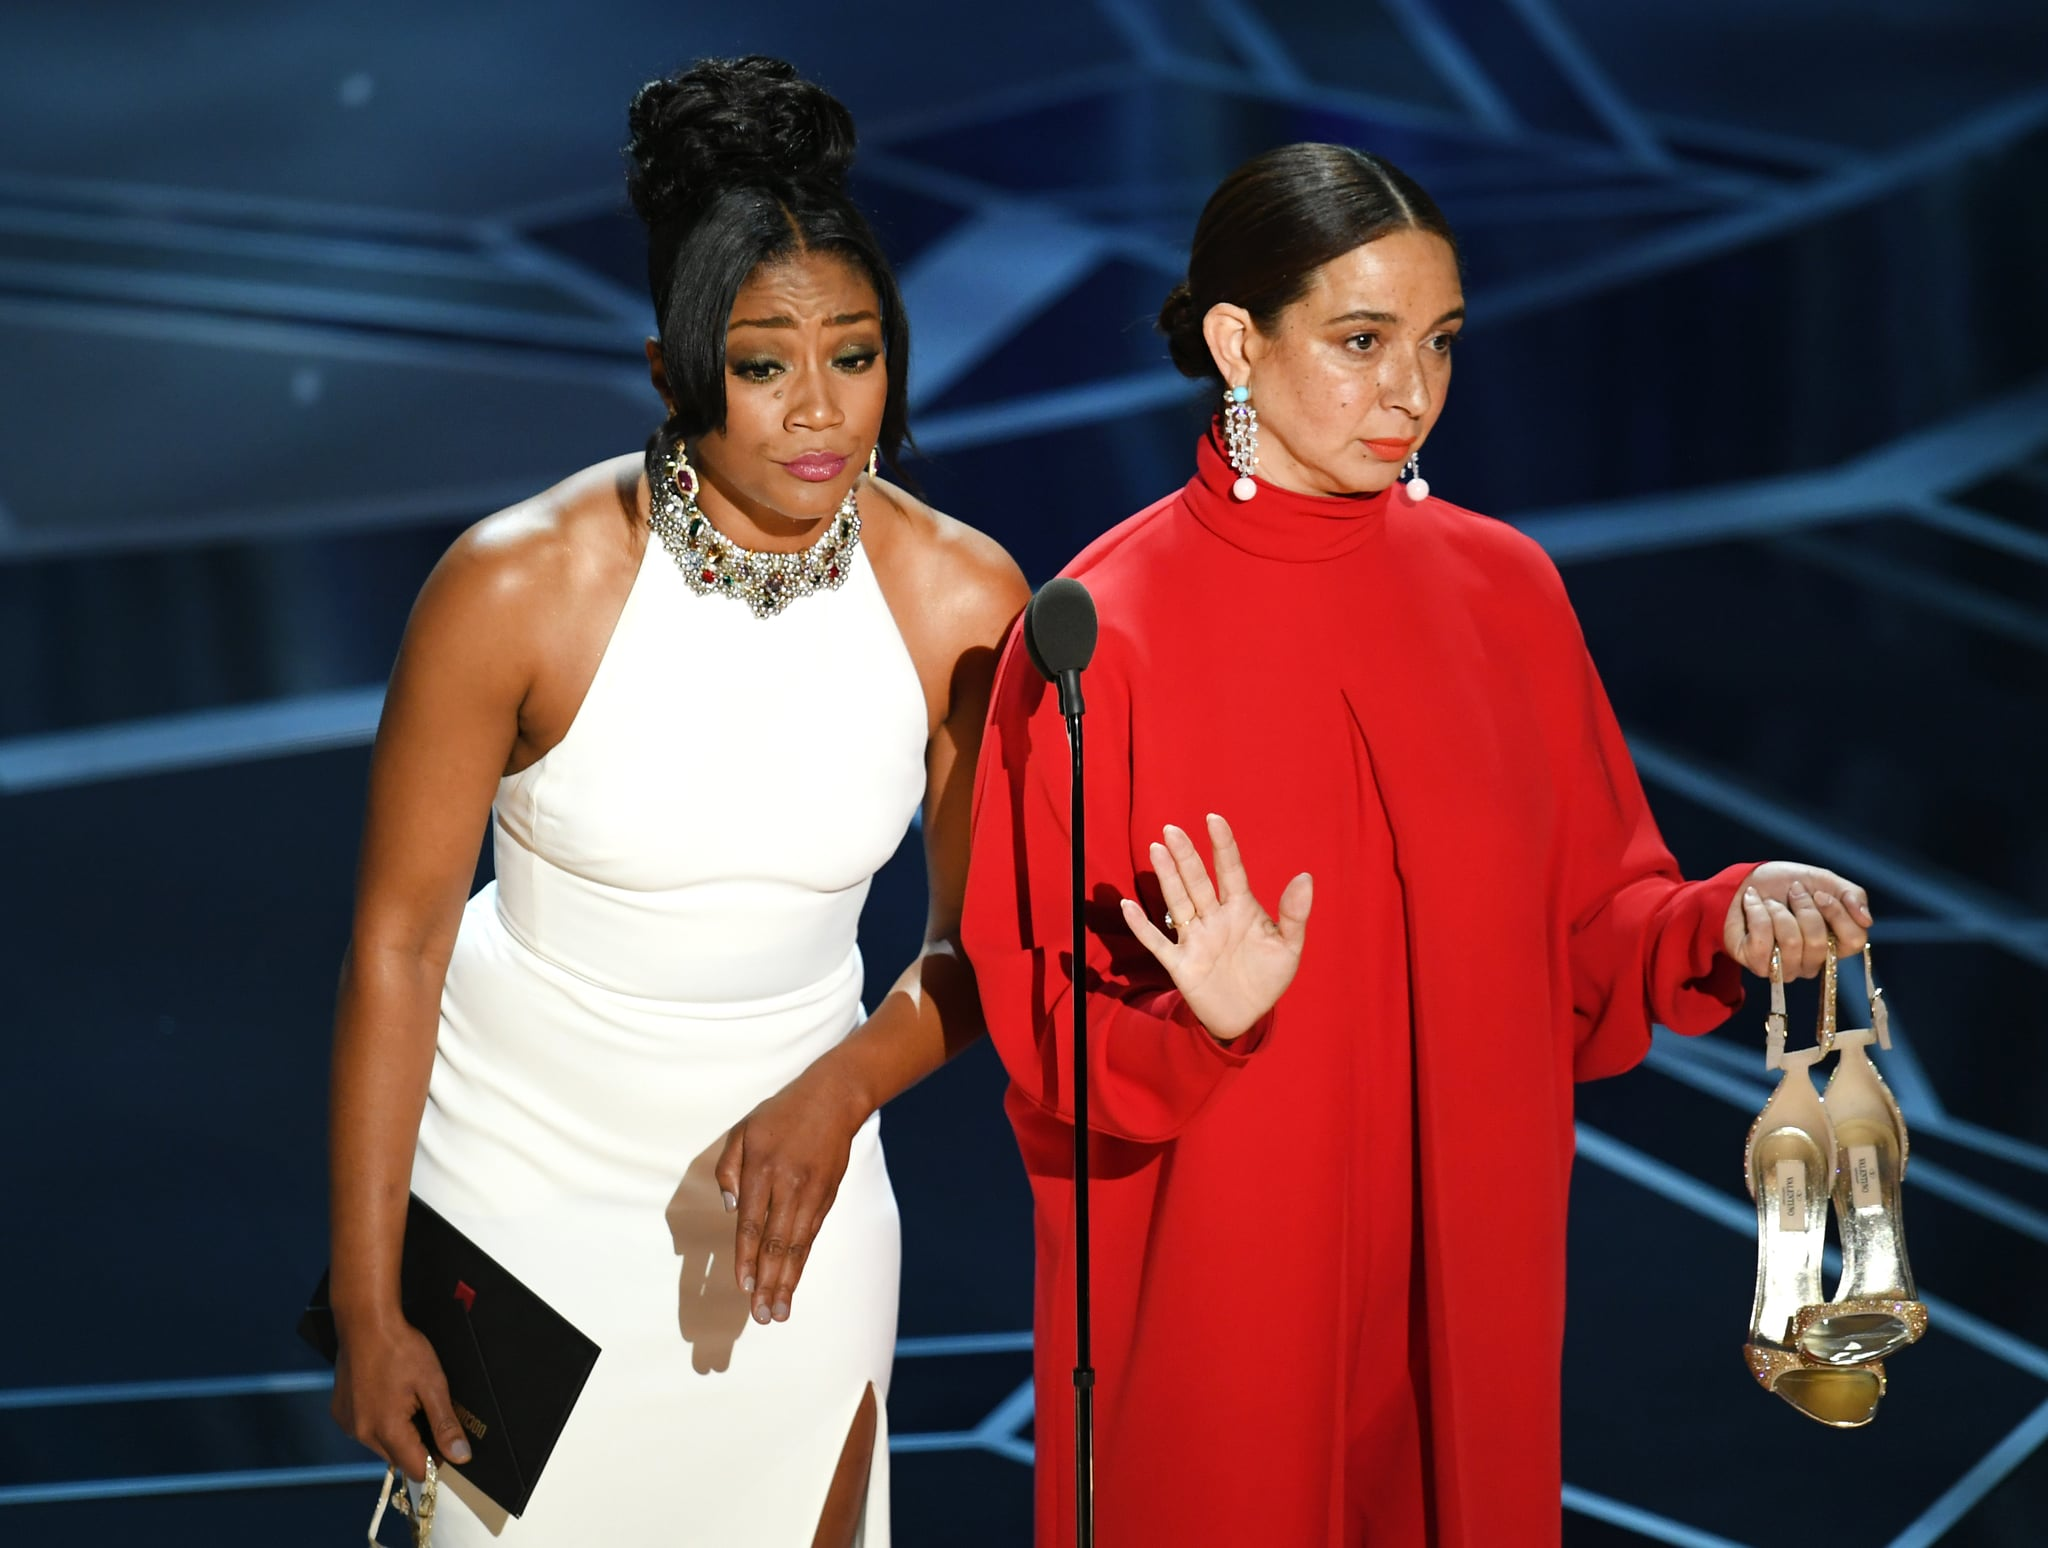 HOLLYWOOD, CA - MARCH 04:  Actors Tiffany Haddish (L) and Maya Rudolph speak onstage during the 90th Annual Academy Awards at the Dolby Theatre at Hollywood & Highland Center on March 4, 2018 in Hollywood, California.  (Photo by Kevin Winter/Getty Images)